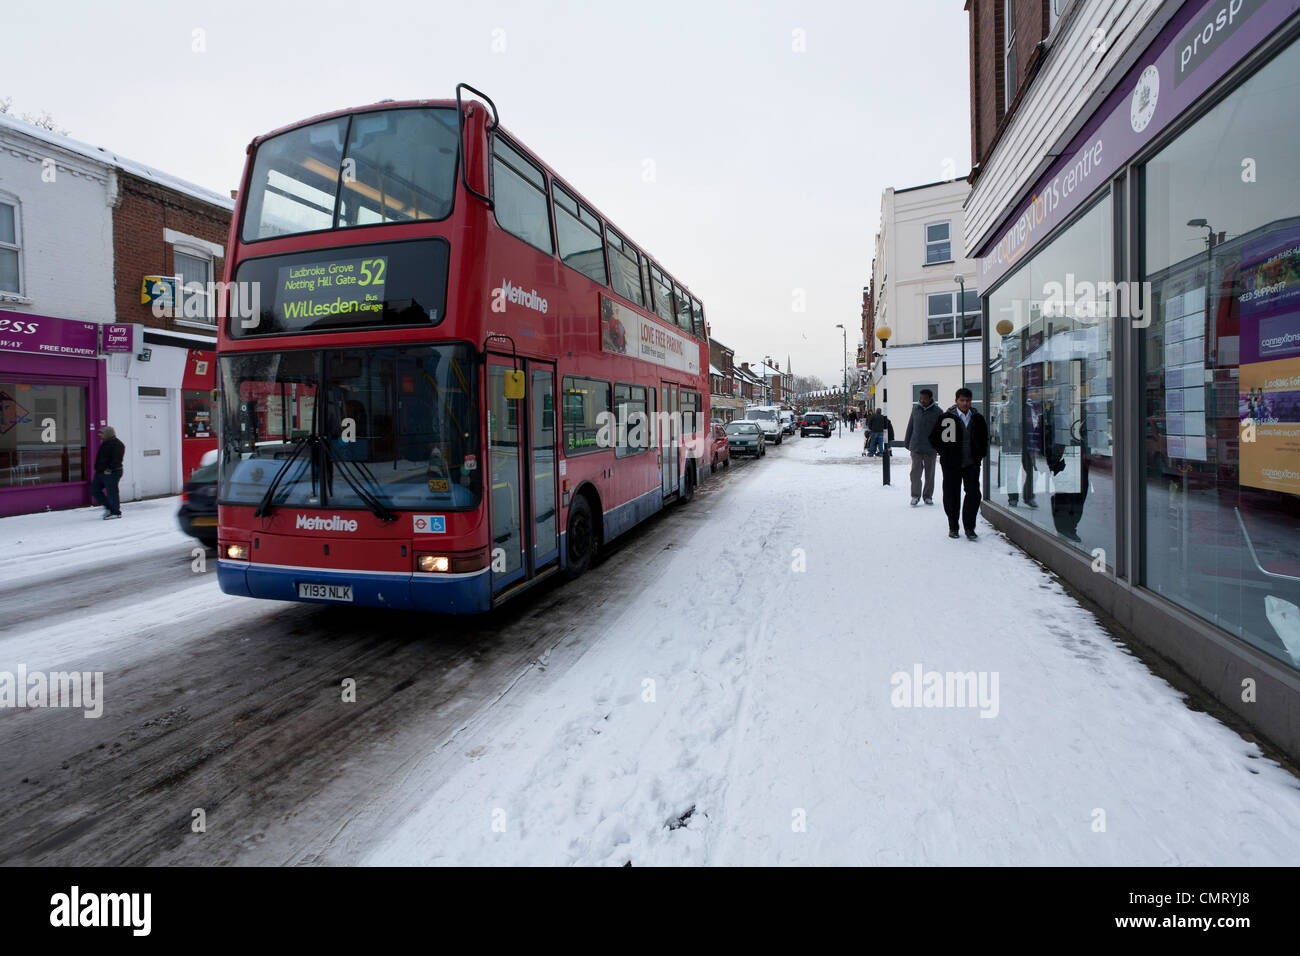 A red double decker bus driving in snow near Willesden Green, London. - Stock Image